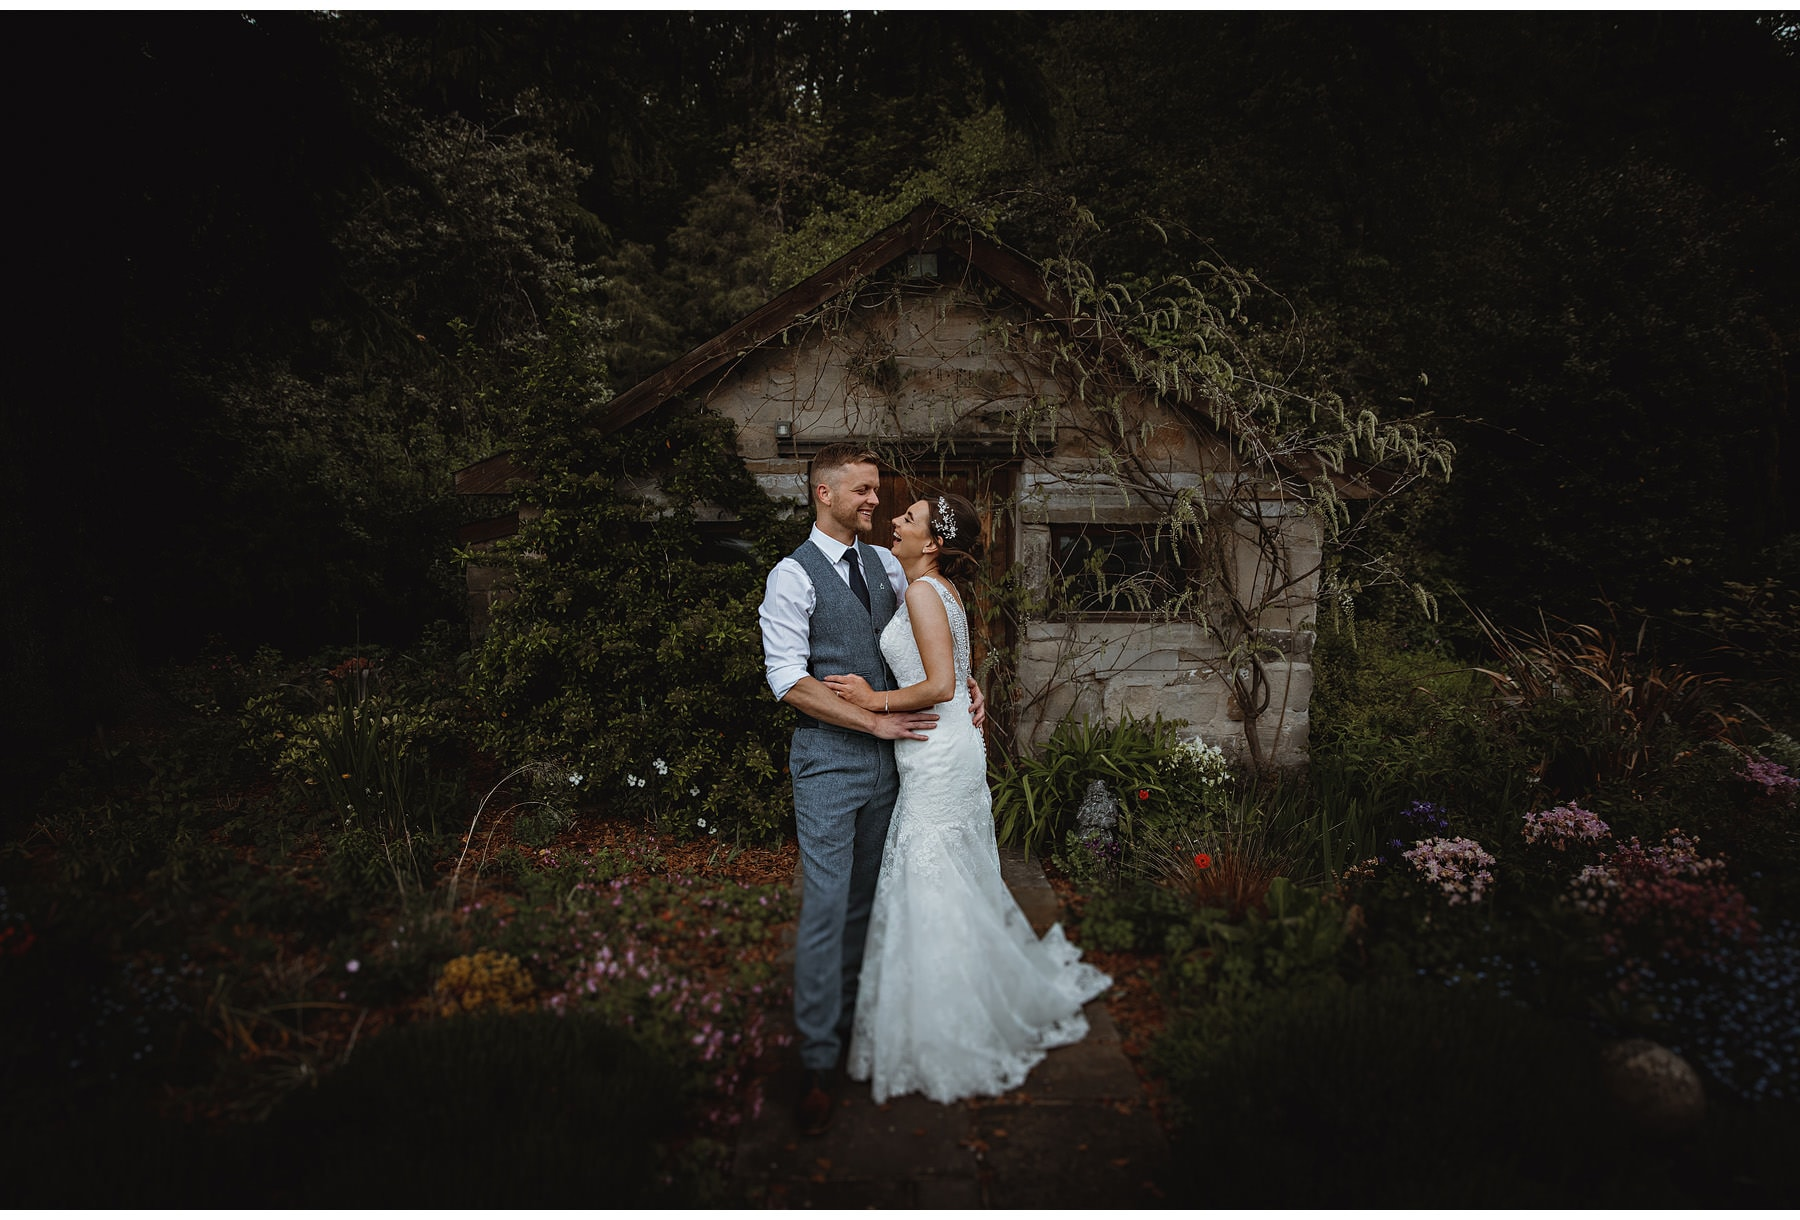 the bride & groom by the garden shed at Stancliffe Hall